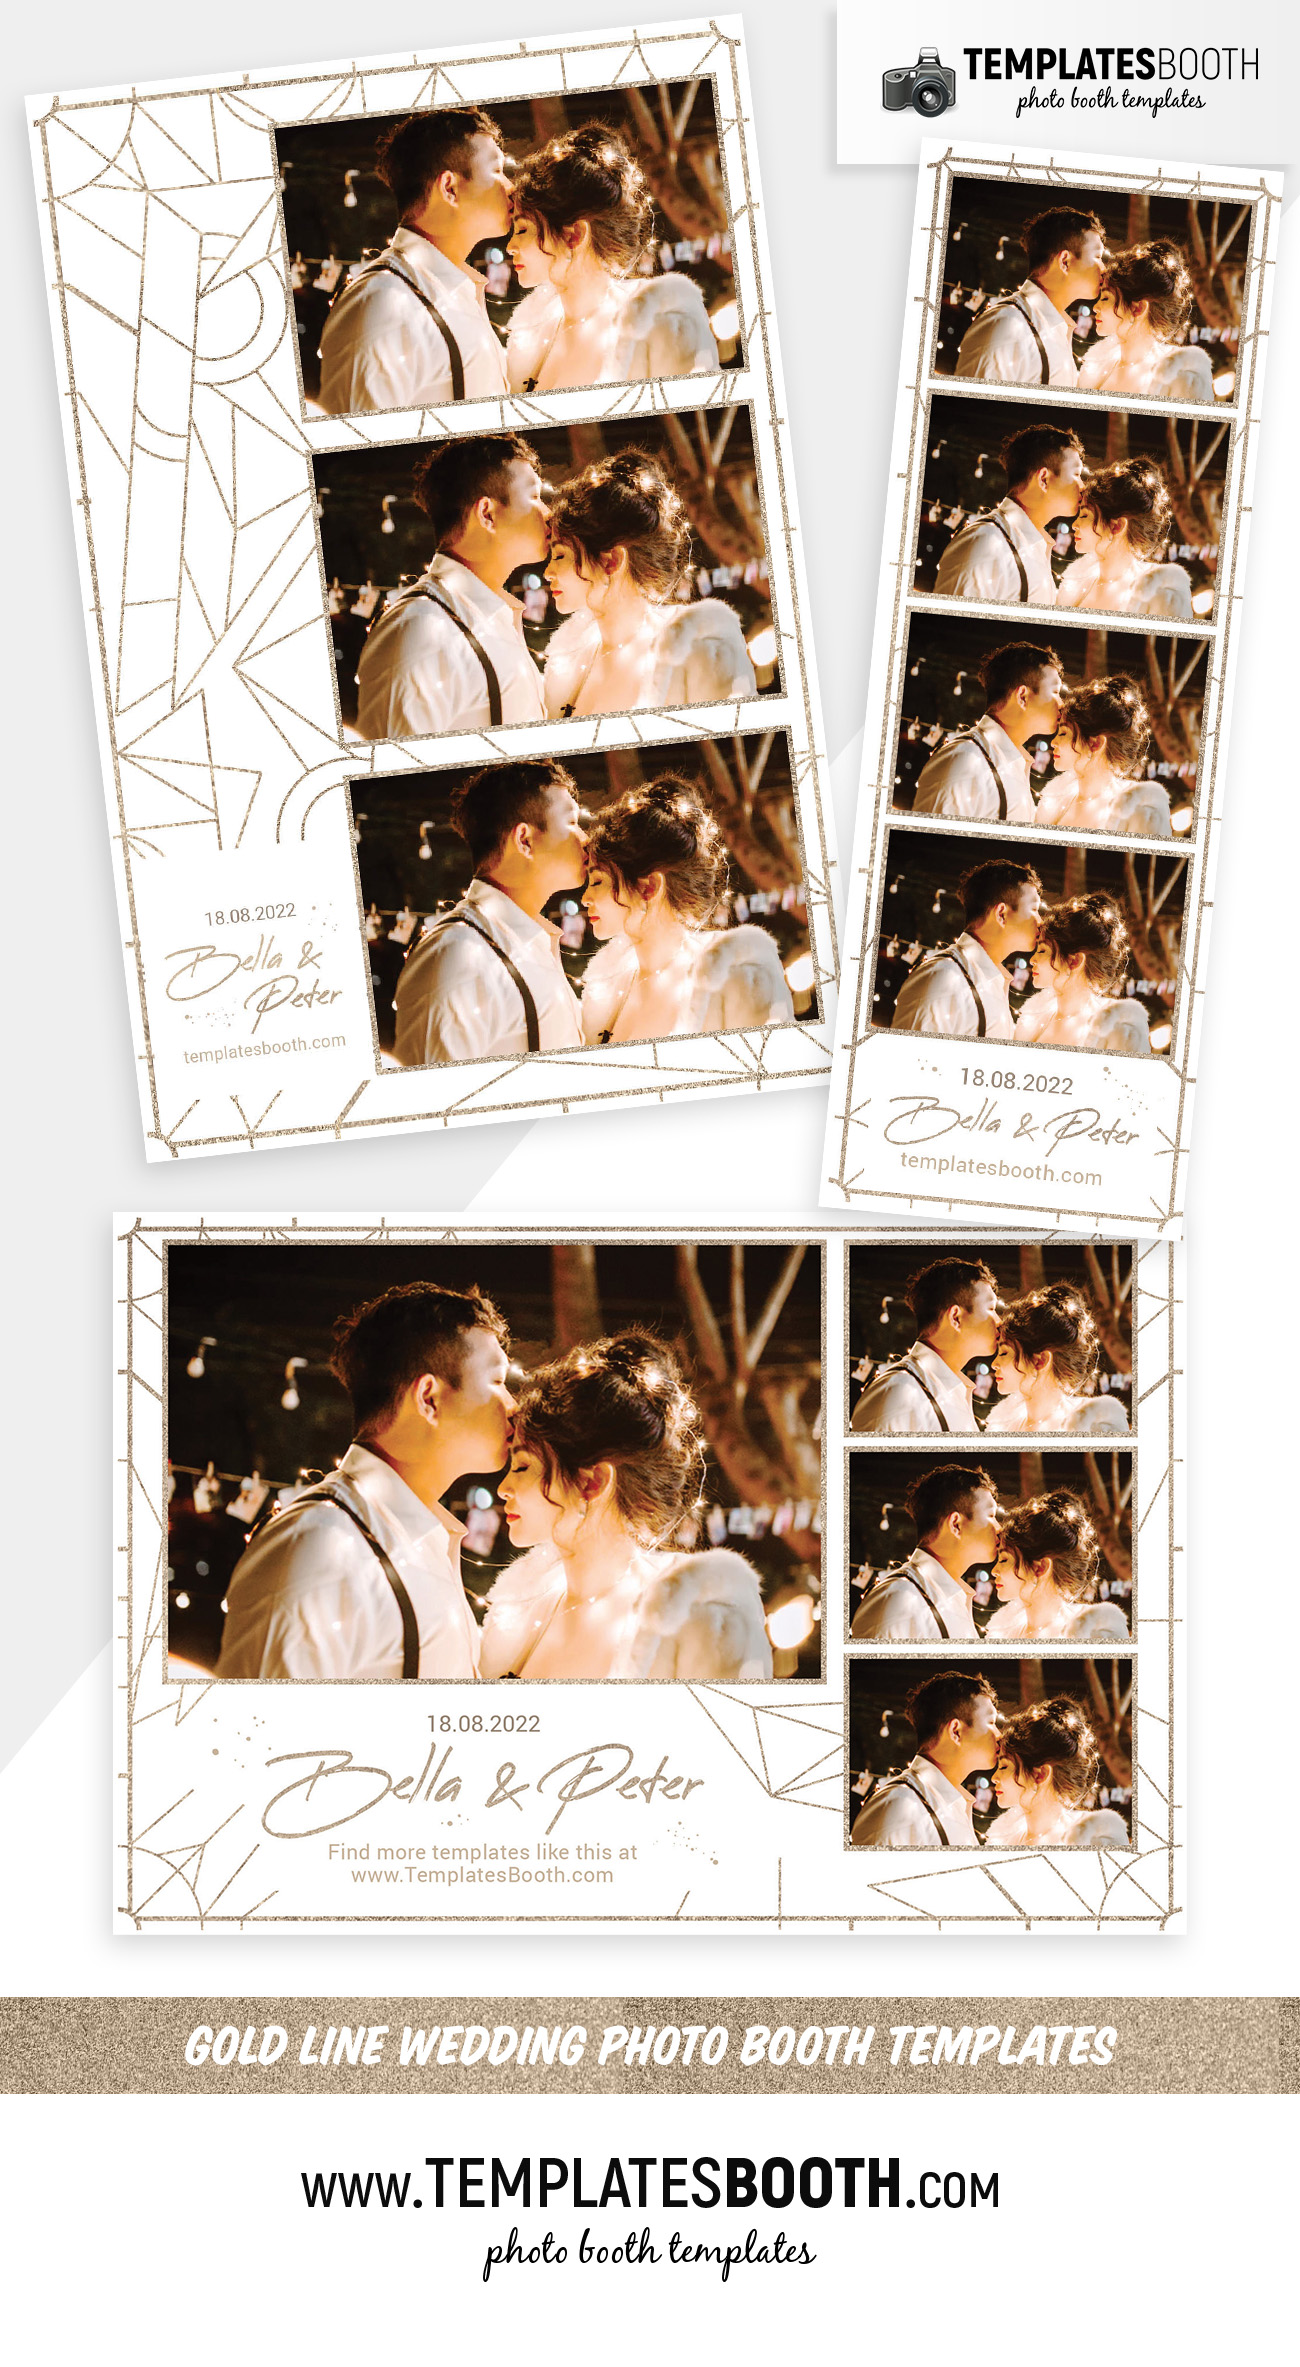 Gold Line Wedding Photo Booth Templates